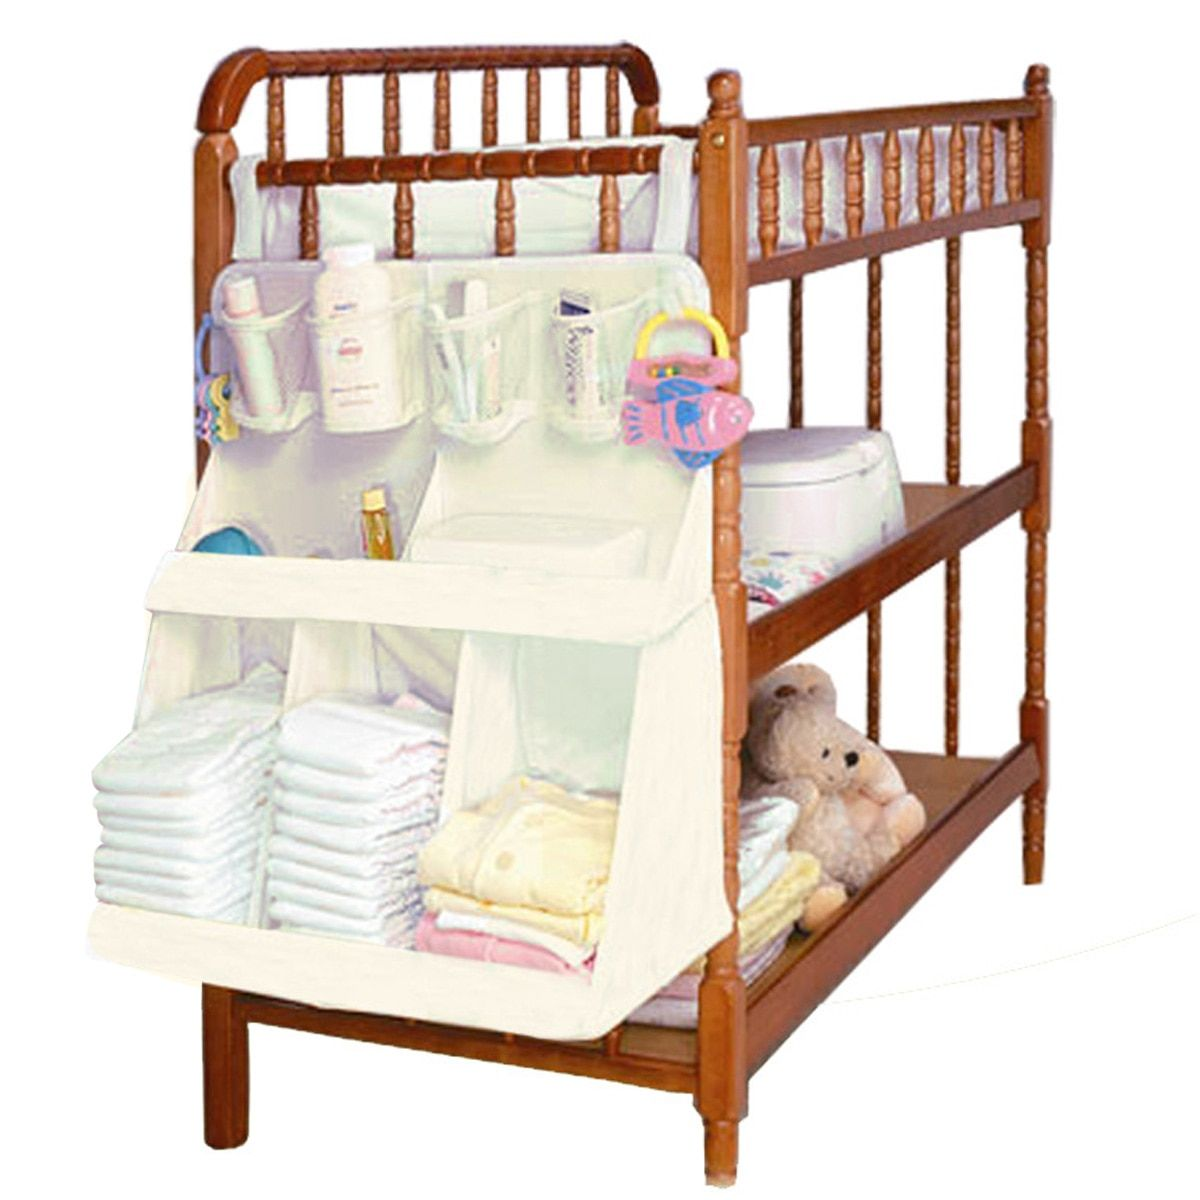 Baby Bedding Set Accessories Waterproof Diapers Bedside Organizer Baby Crib Children's Bed Hanging Bag Portable Storage Bags